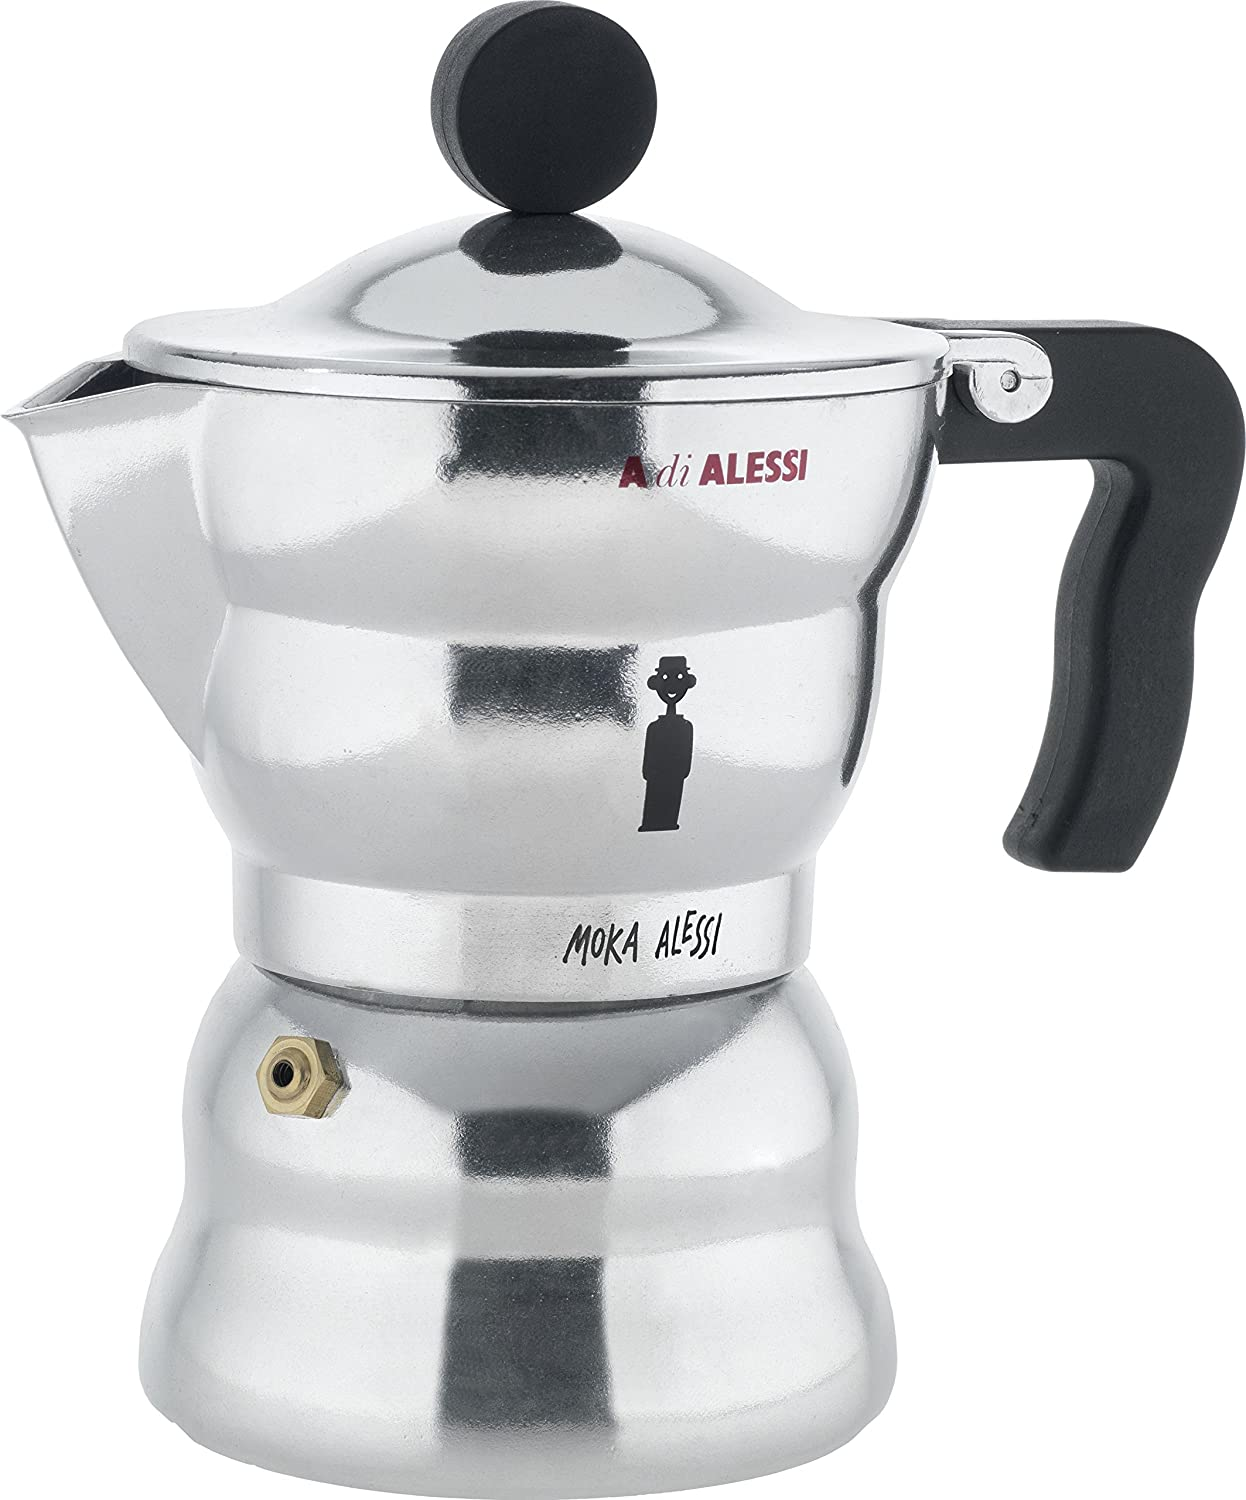 Black Alessi AAM33//3Moka Stove Top Espresso 3 Cup Coffee Maker in Aluminium Casting Handle And Knob in Thermoplastic Resin